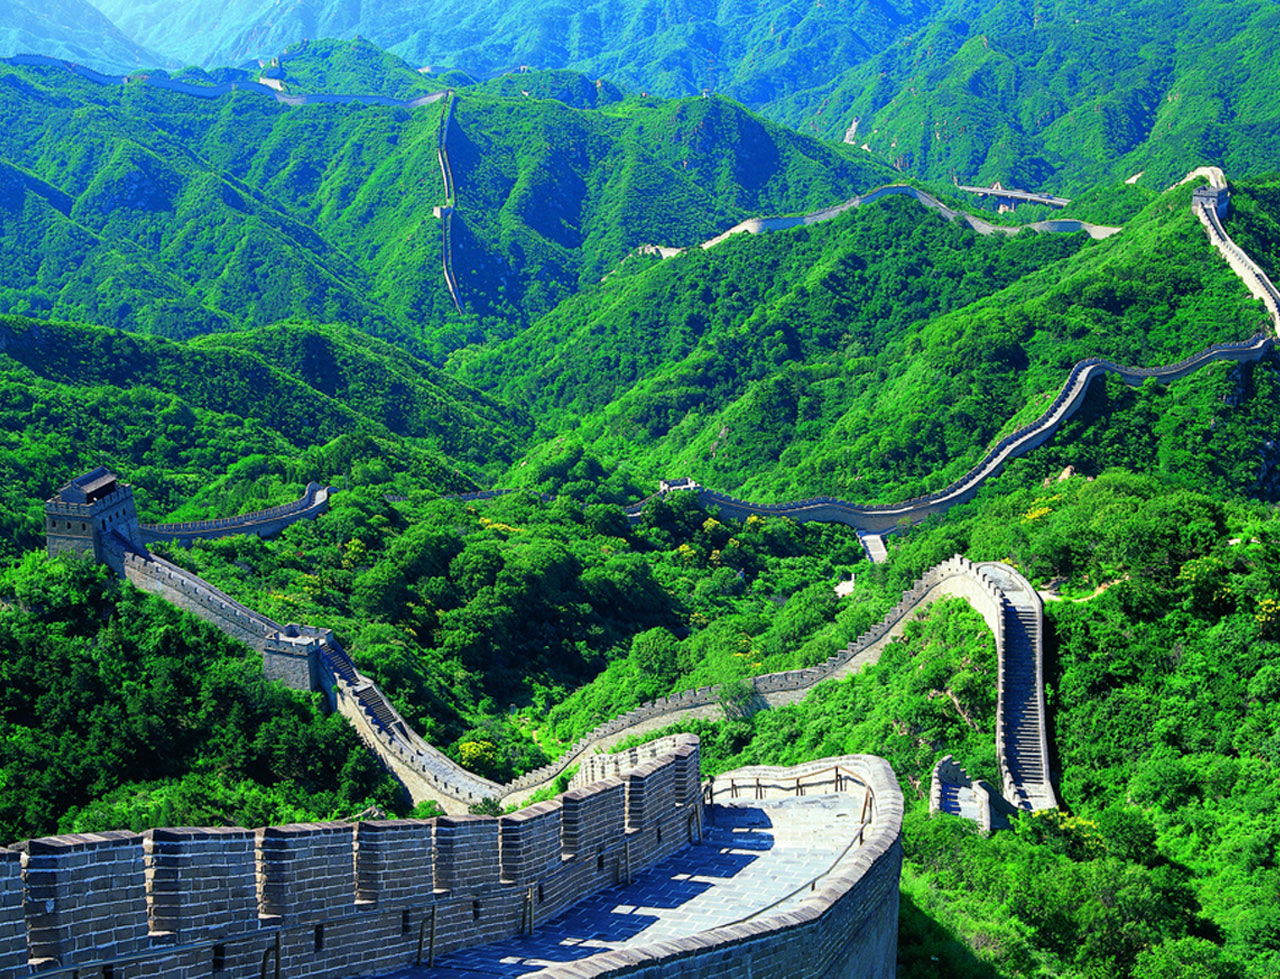 an introduction to the country of china A business and social guide to china and chinese culture, society, language,  etiquette, customs, manners and protocol for anyone travelling or doing business .